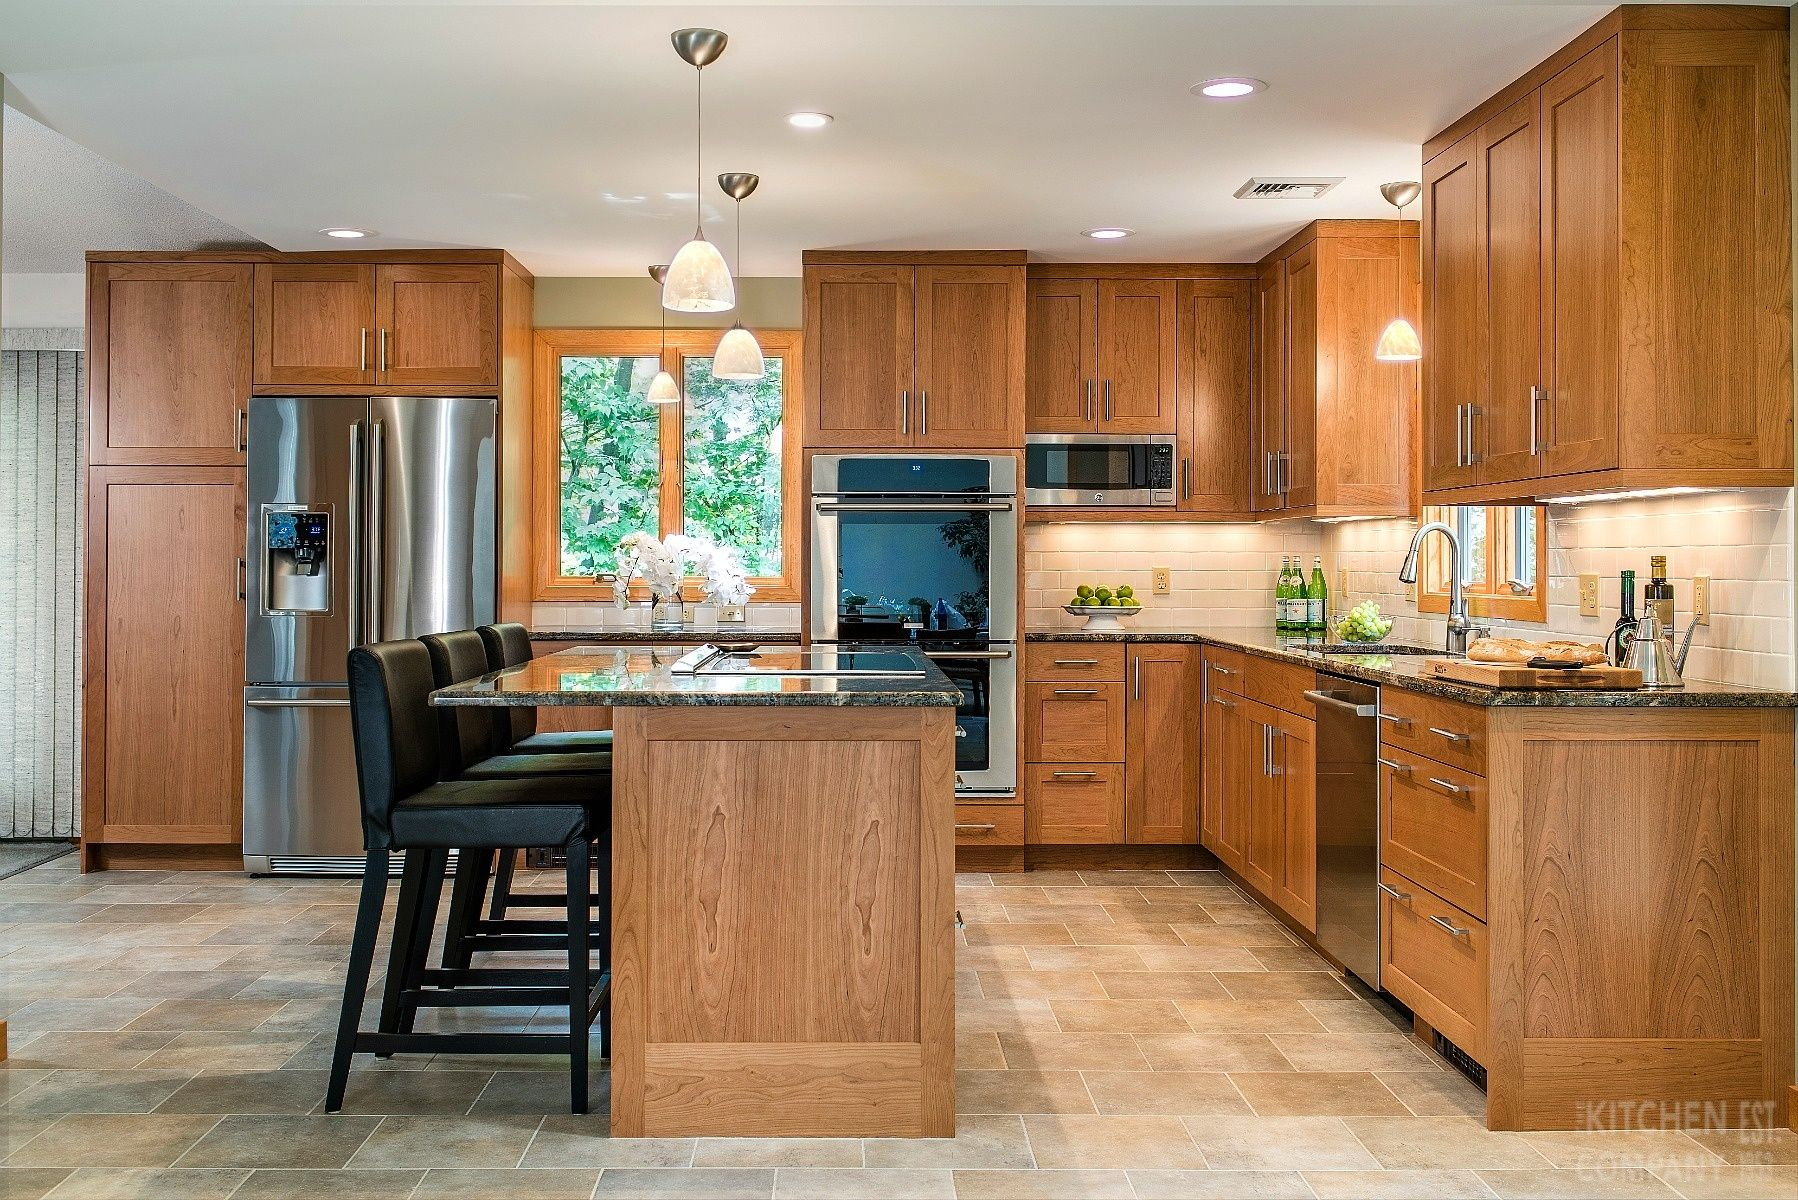 Ordinaire Custom Cherry Kitchen In Guilford, CT | Kitchen Remodeling Companies